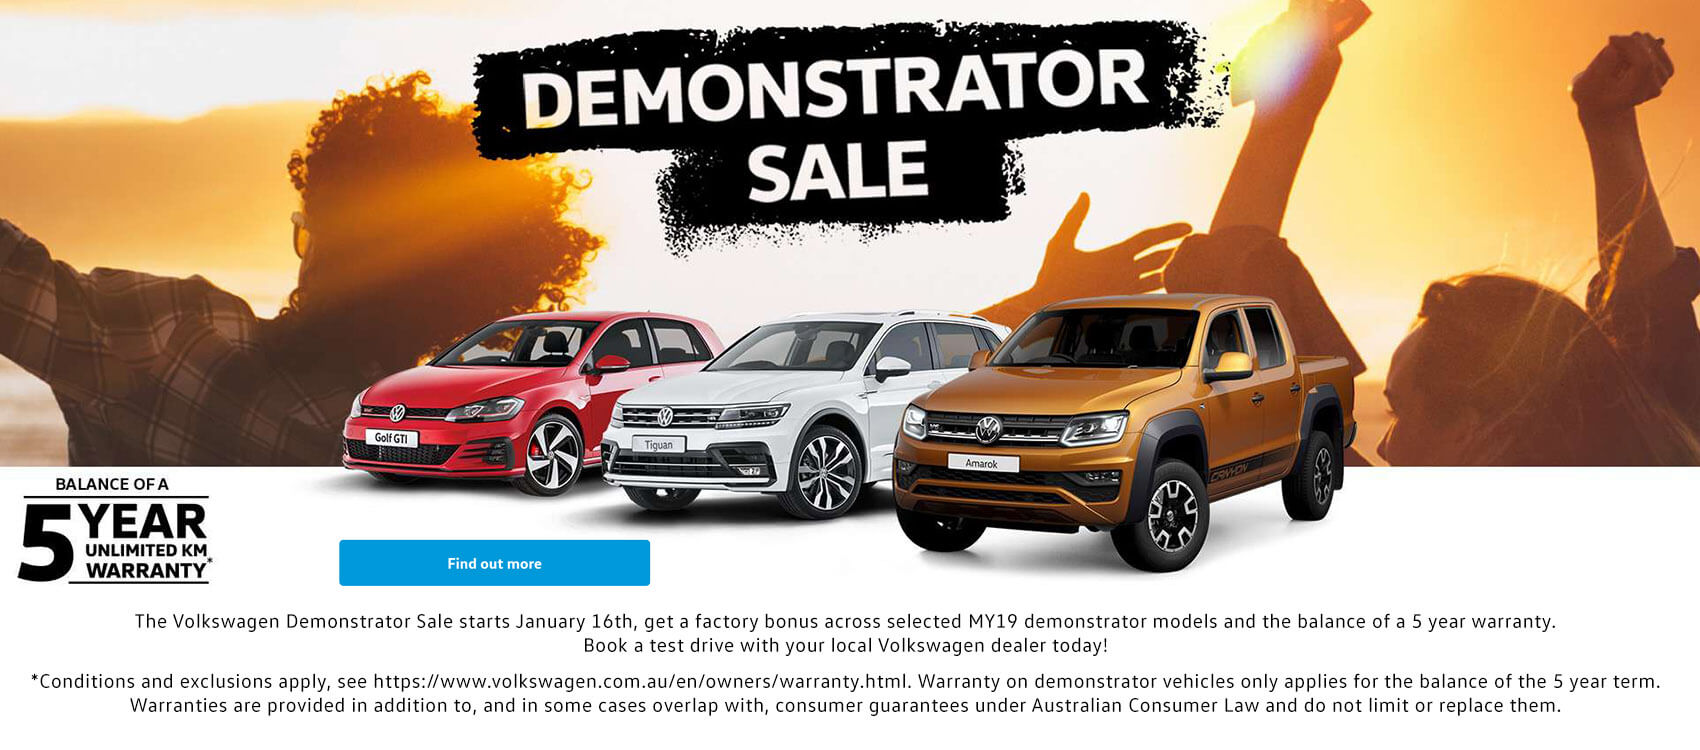 The Volkswagen Demonstrator Sale starts January 16th, get a factory bonus across selected MY19 demonstrator models and the balance of a 5 year warranty. Book a test drive with Cricks Highway Volkswagen